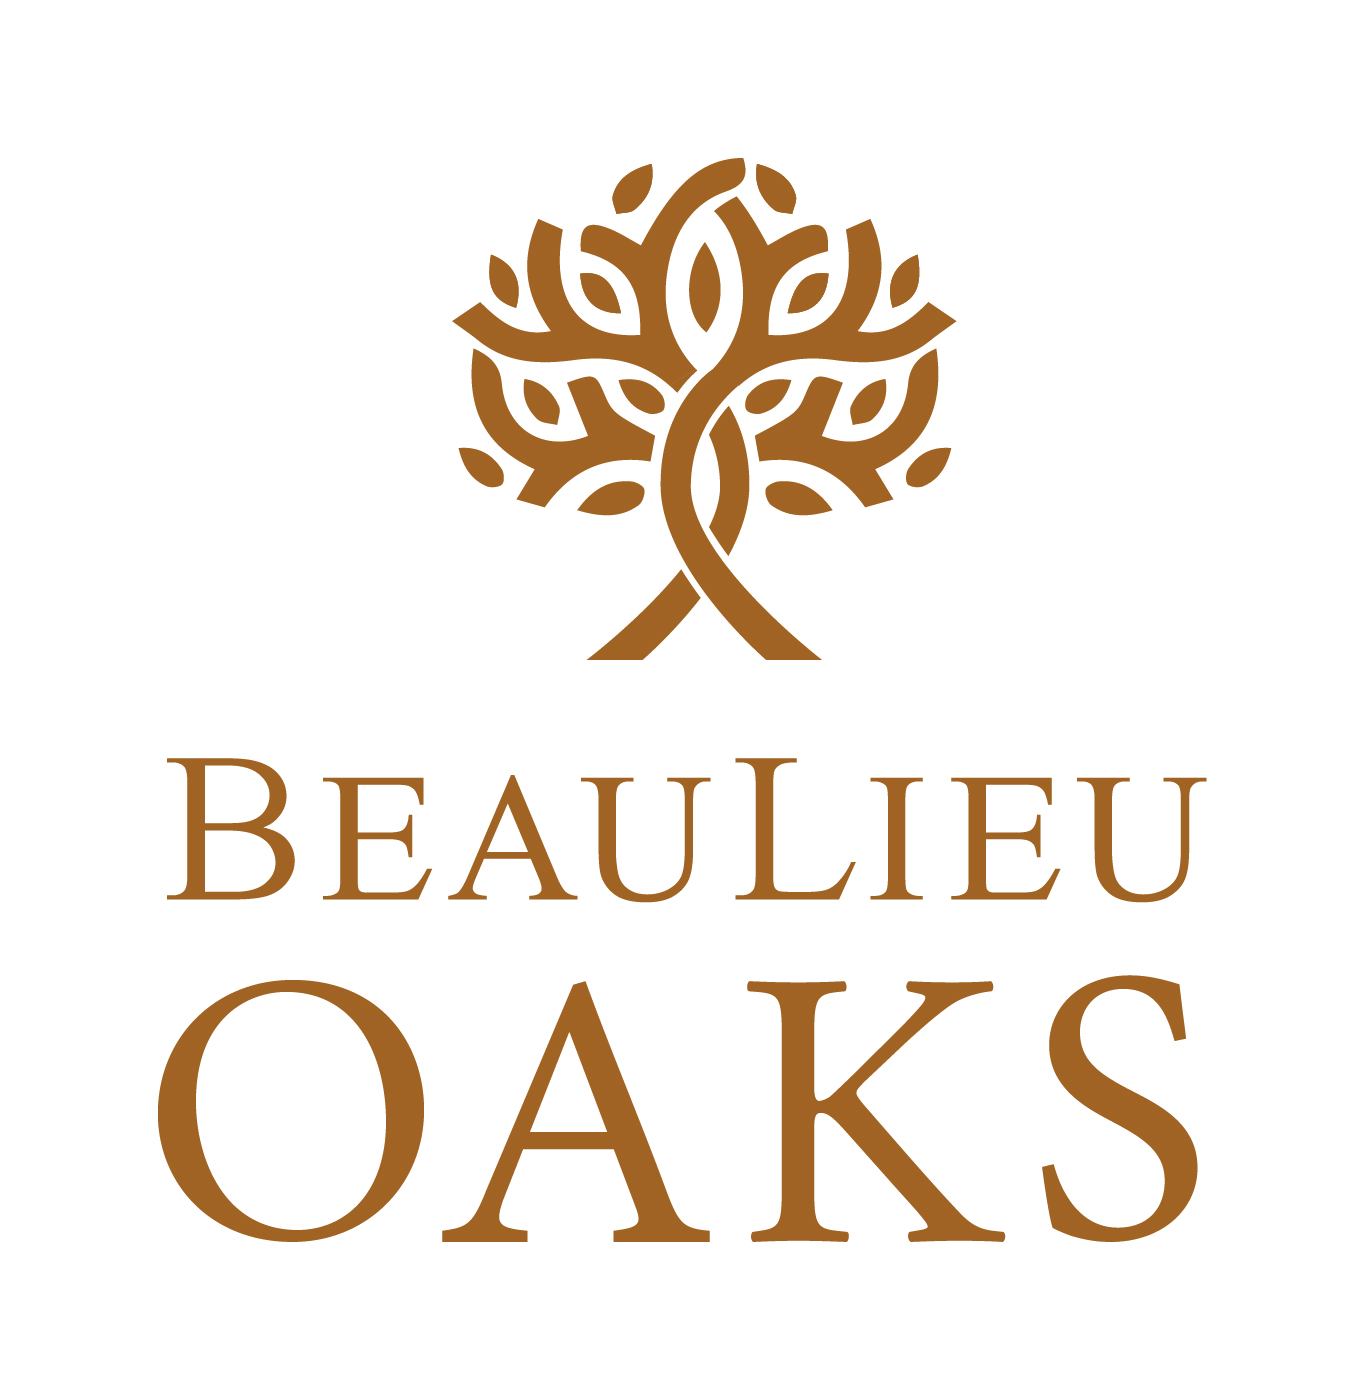 Beaulieu Oaks